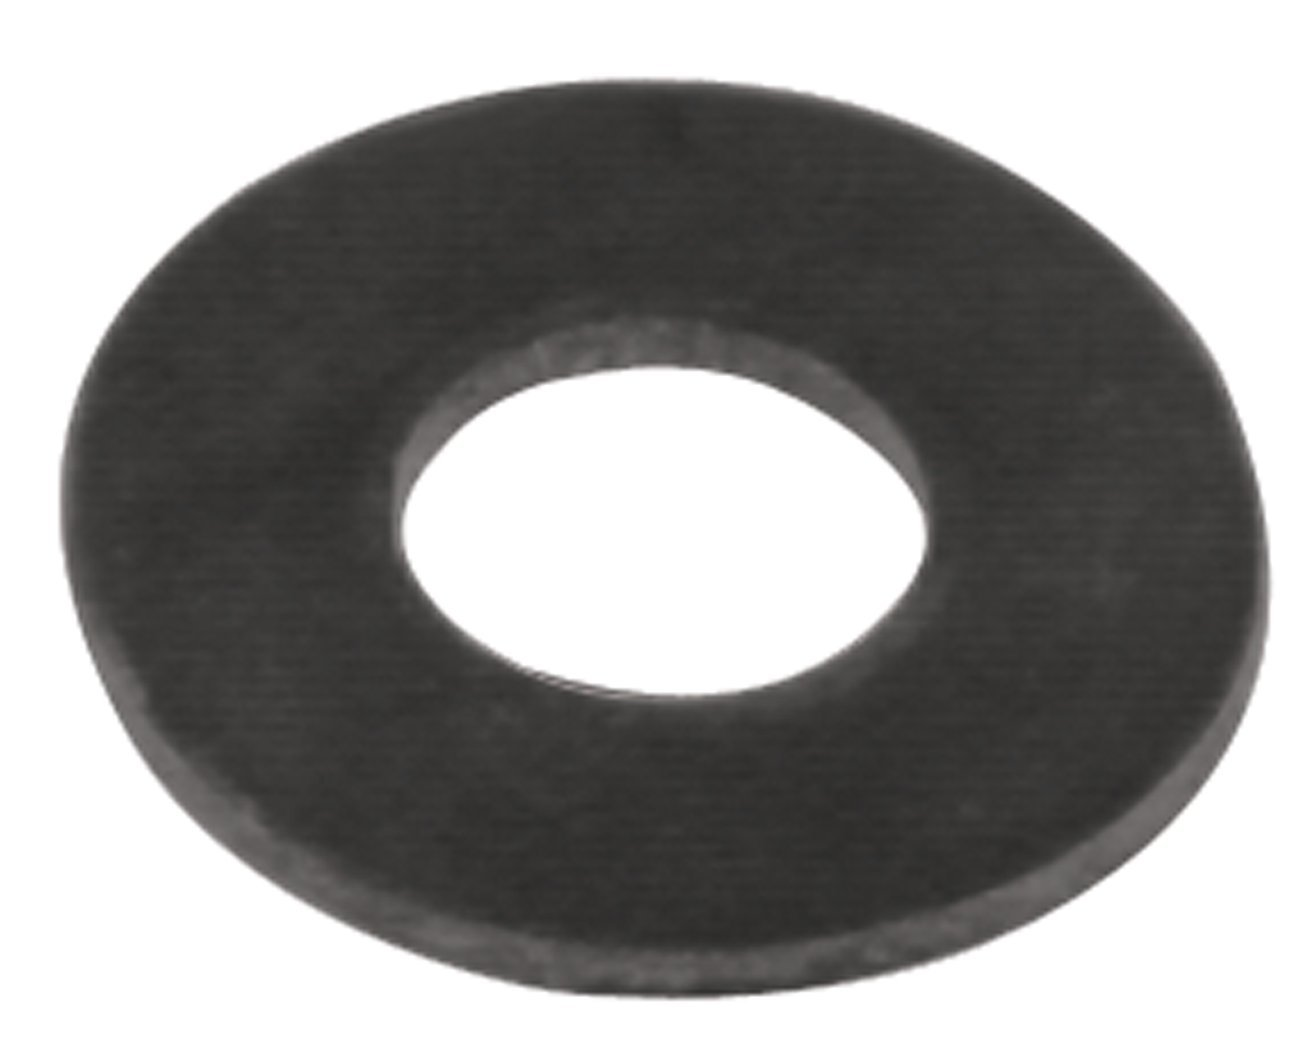 The Hillman Group The Hillman Group 3813 5/16 In. x 3/4 In. x 1/16 In. Rubber Washer (50-Pack)